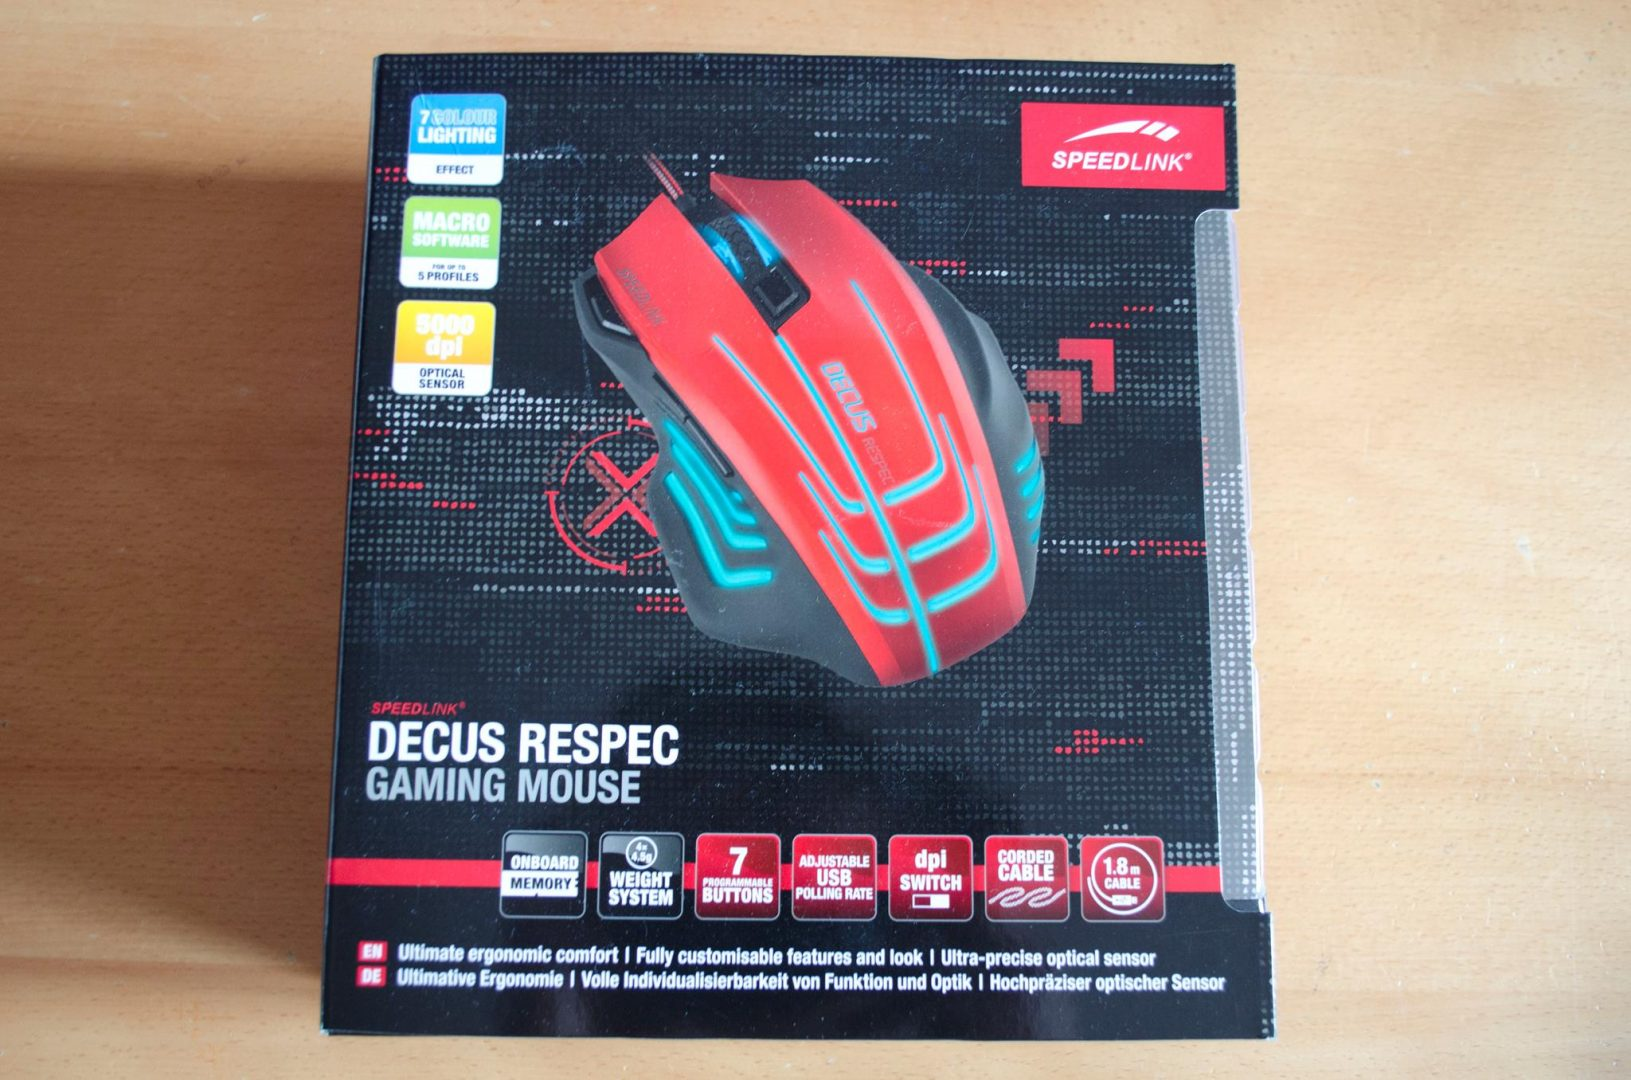 speedlink decus respec gaming mouse review_10